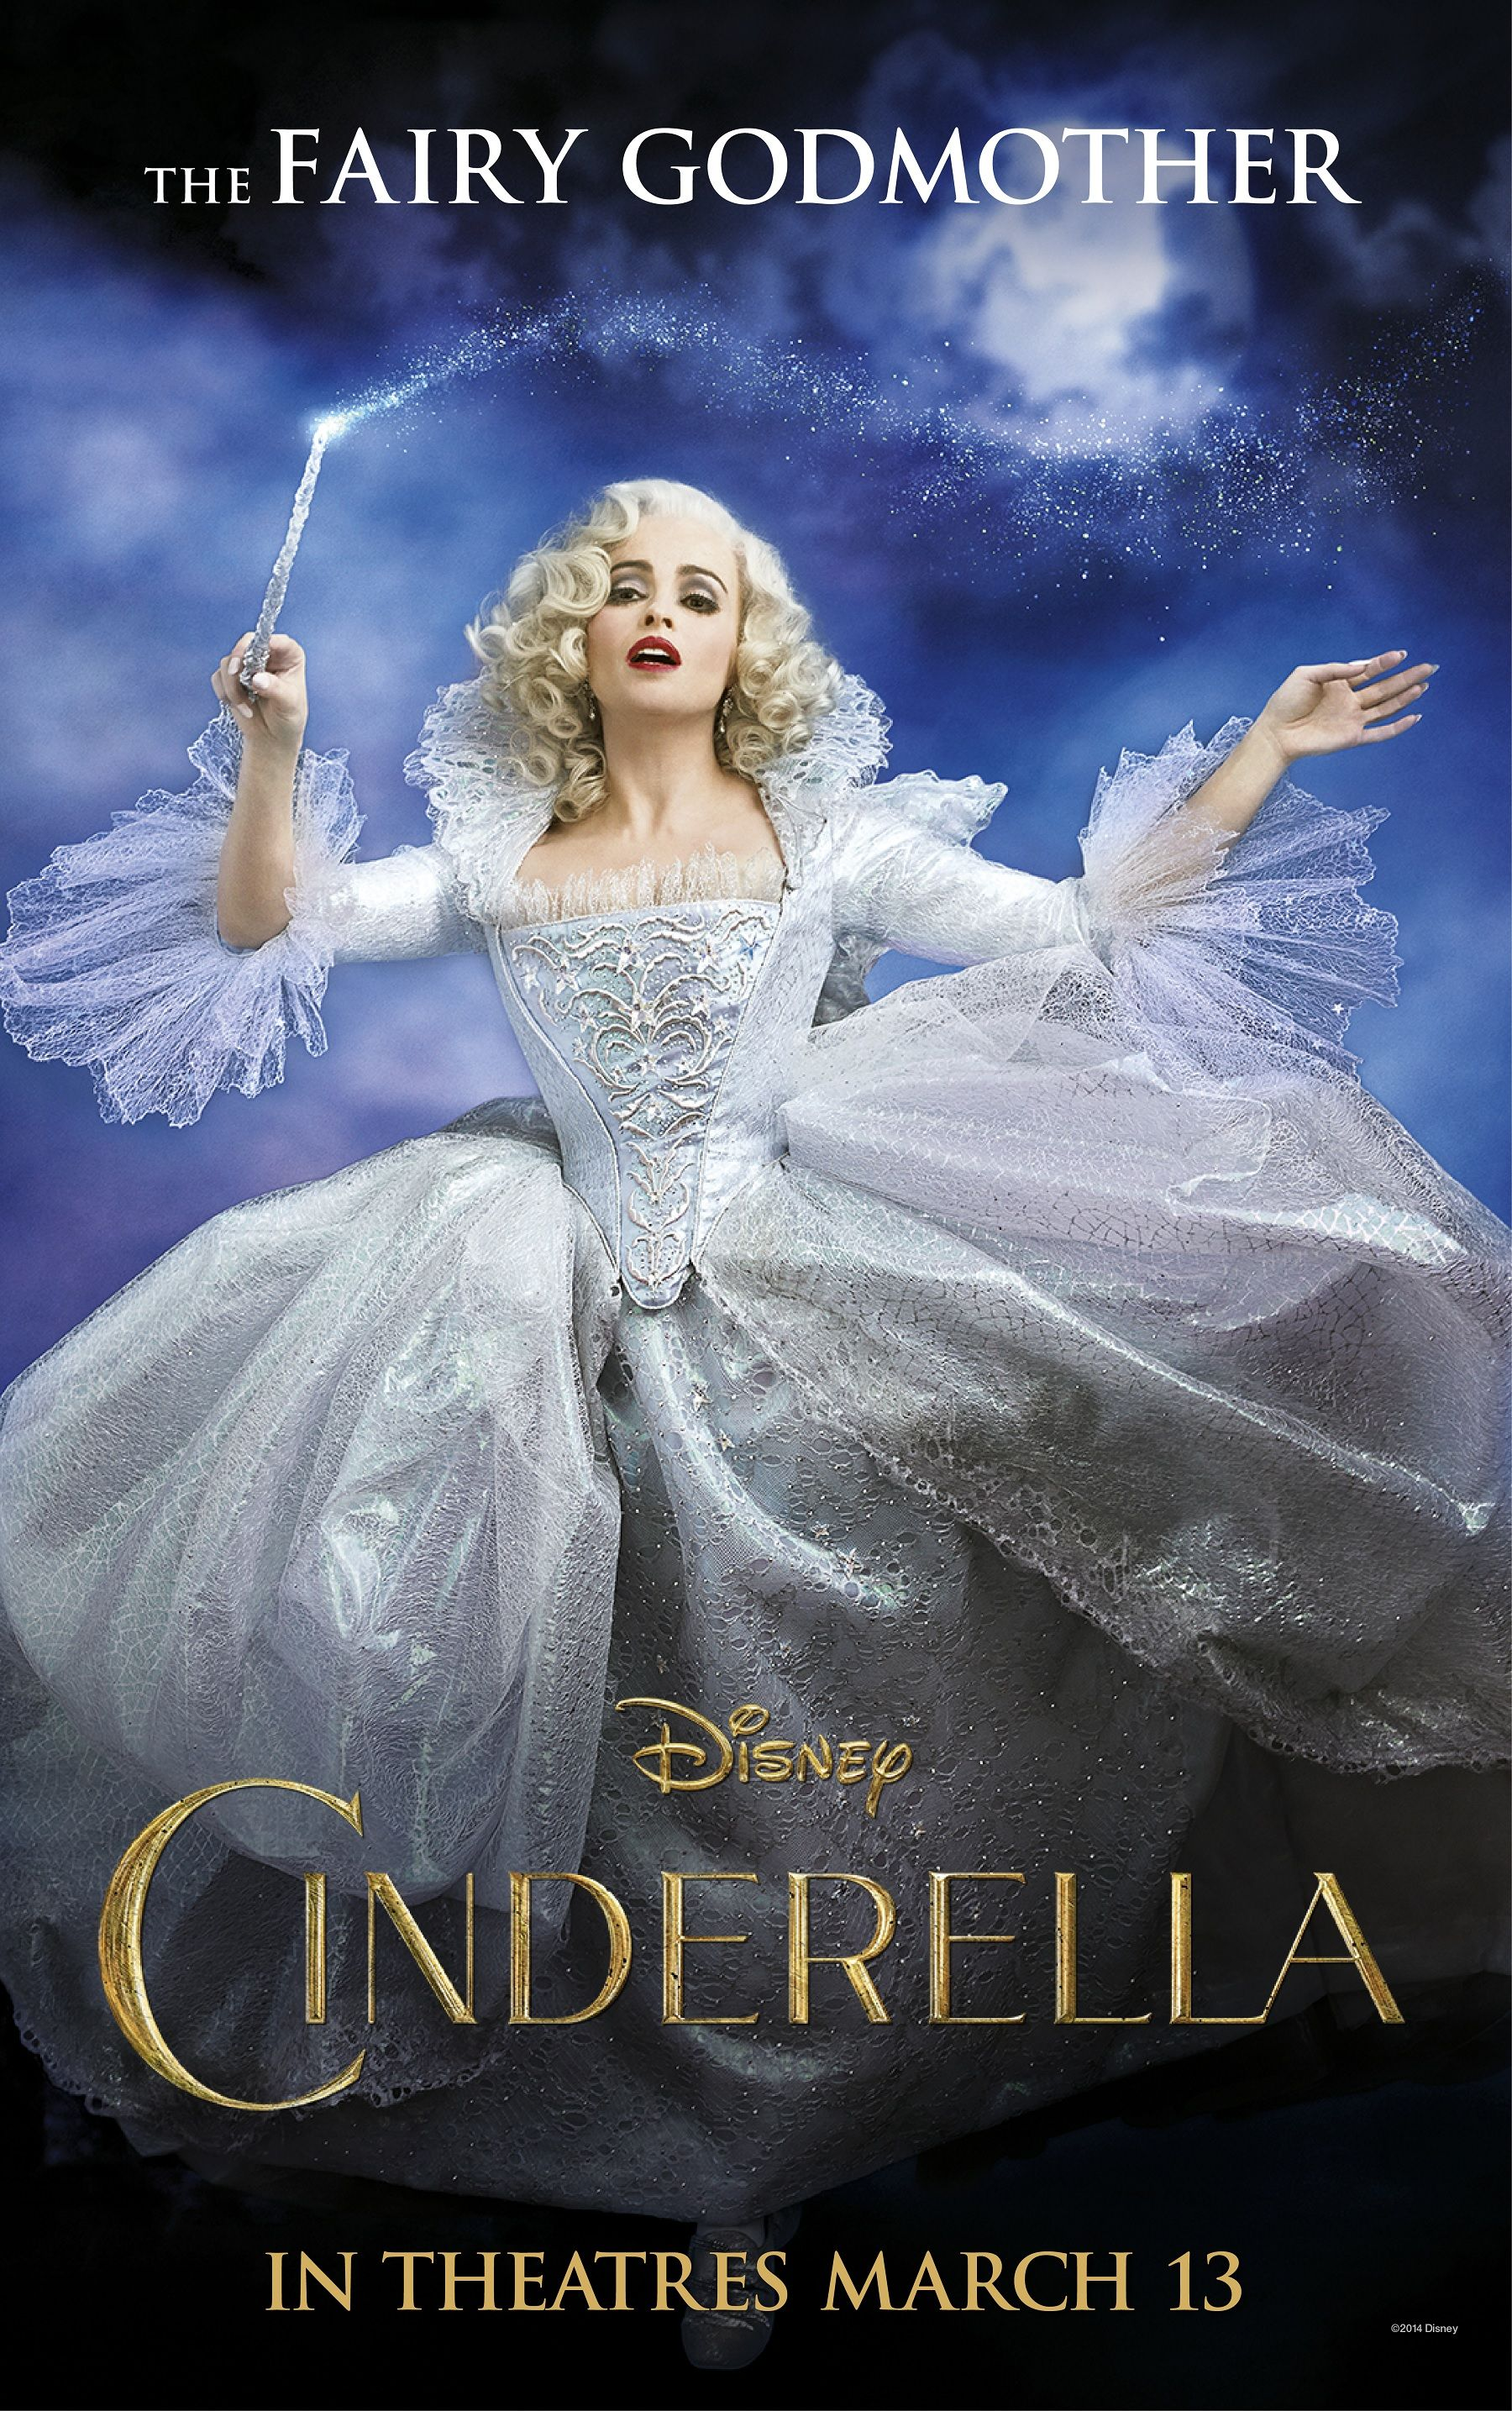 The Fairy Godmother From Disney Cinderella Live Action Movie